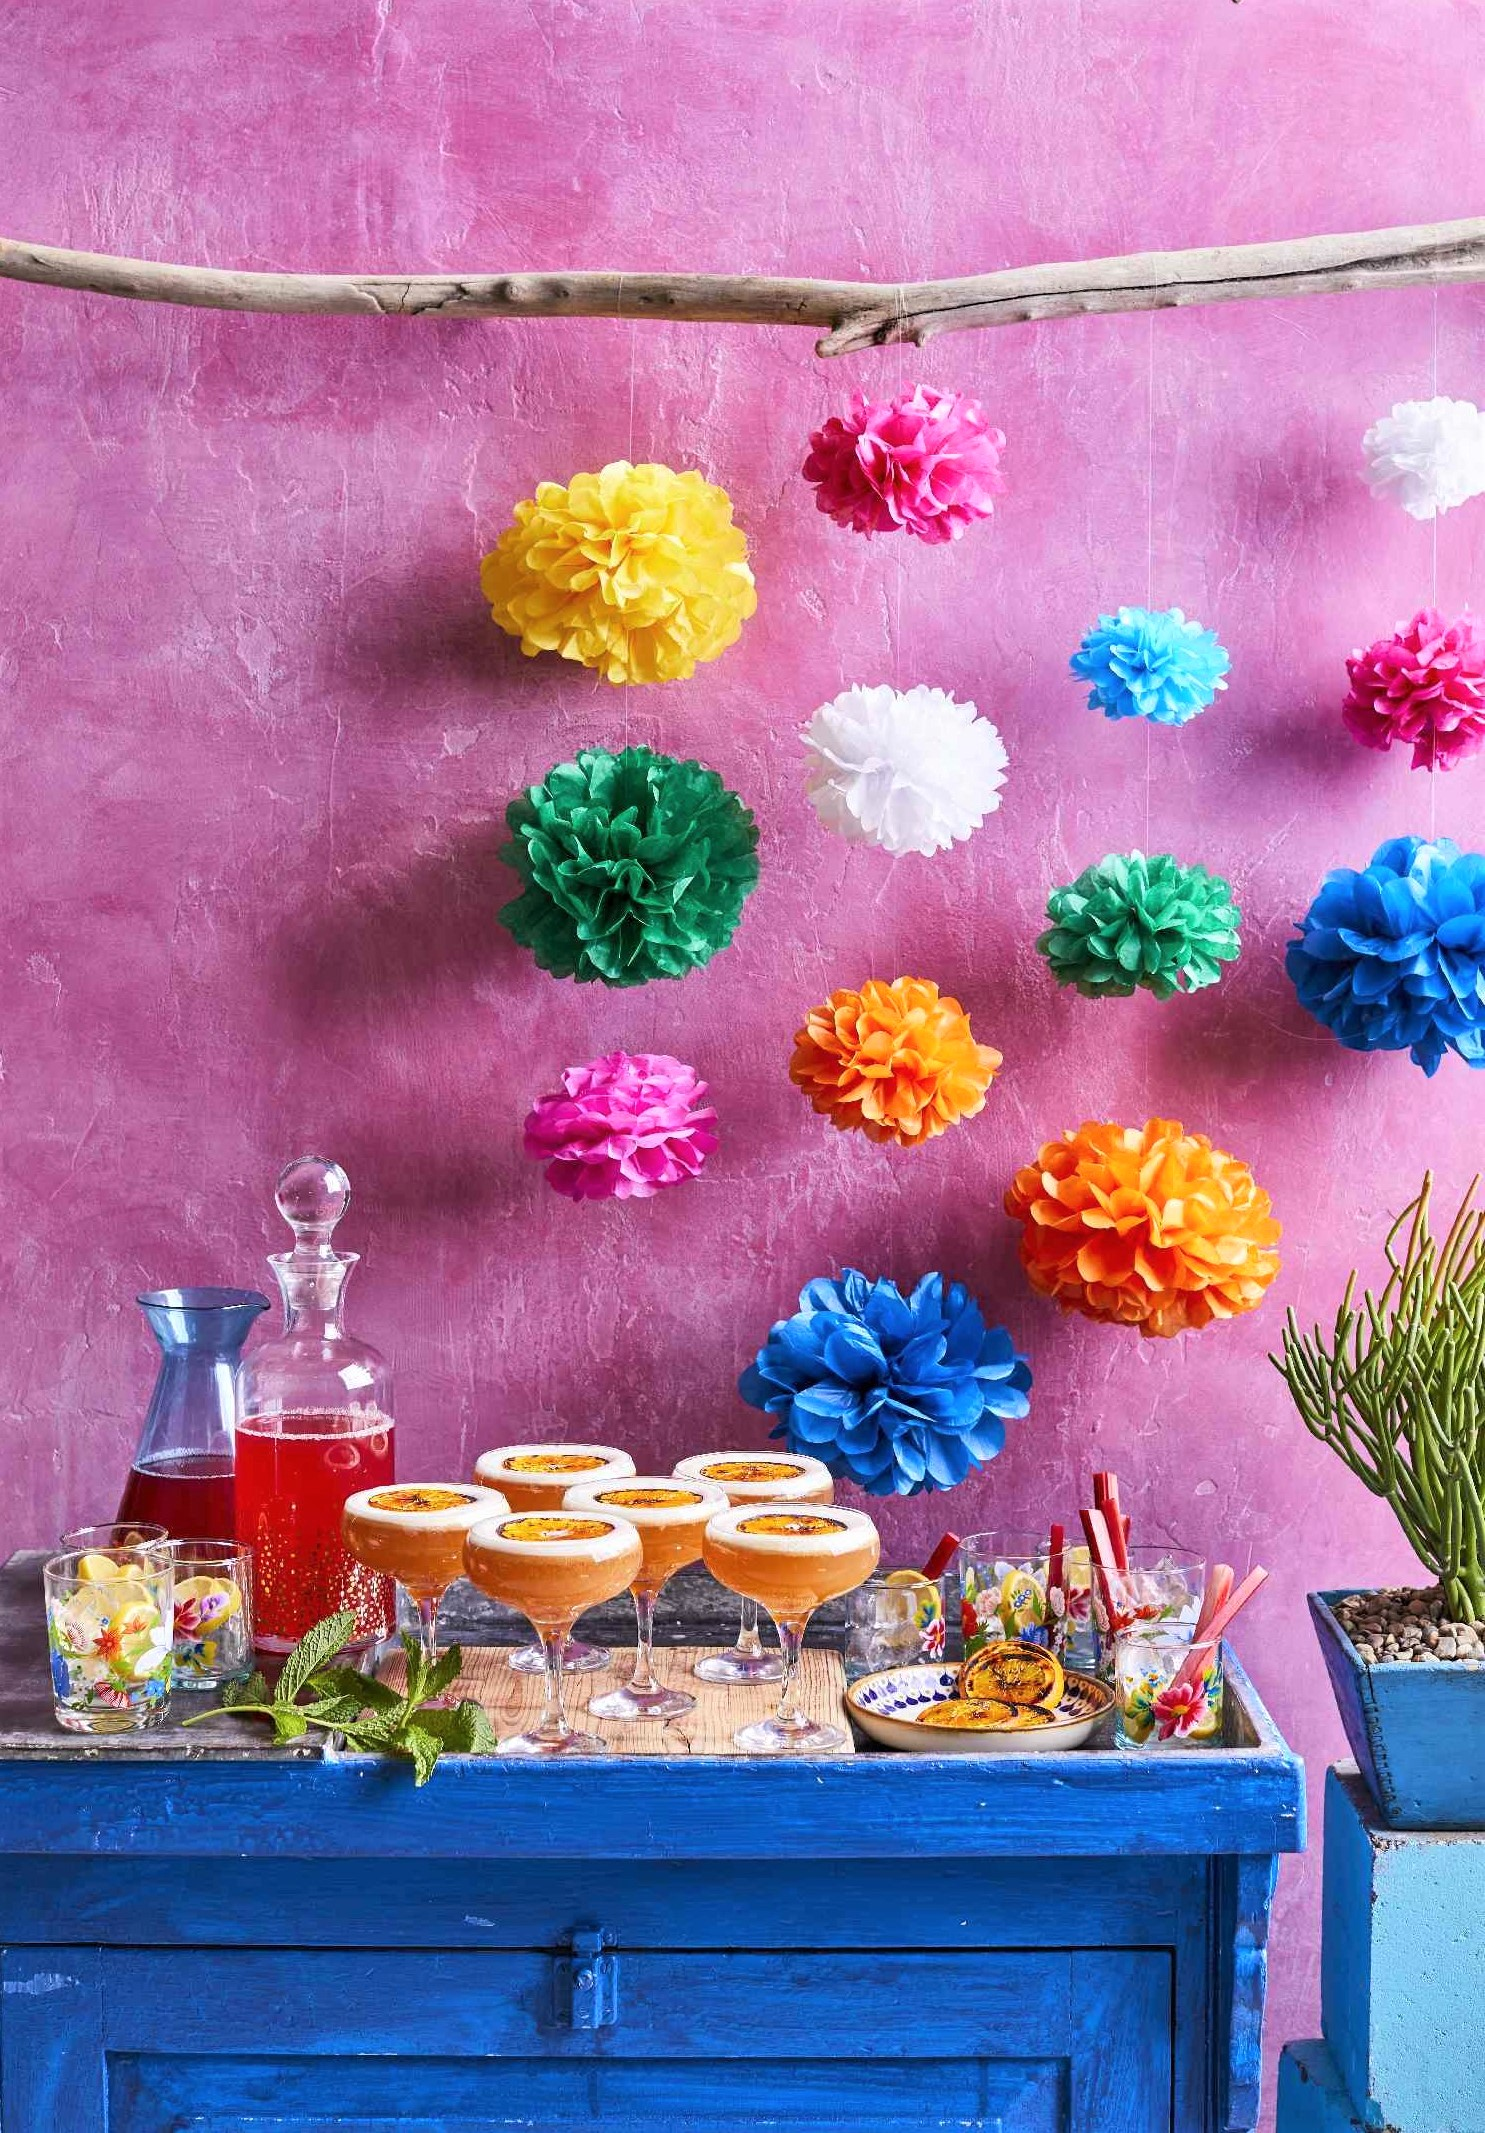 Food and drinks on a table in front of pink wall that has tissue poms hanging over it